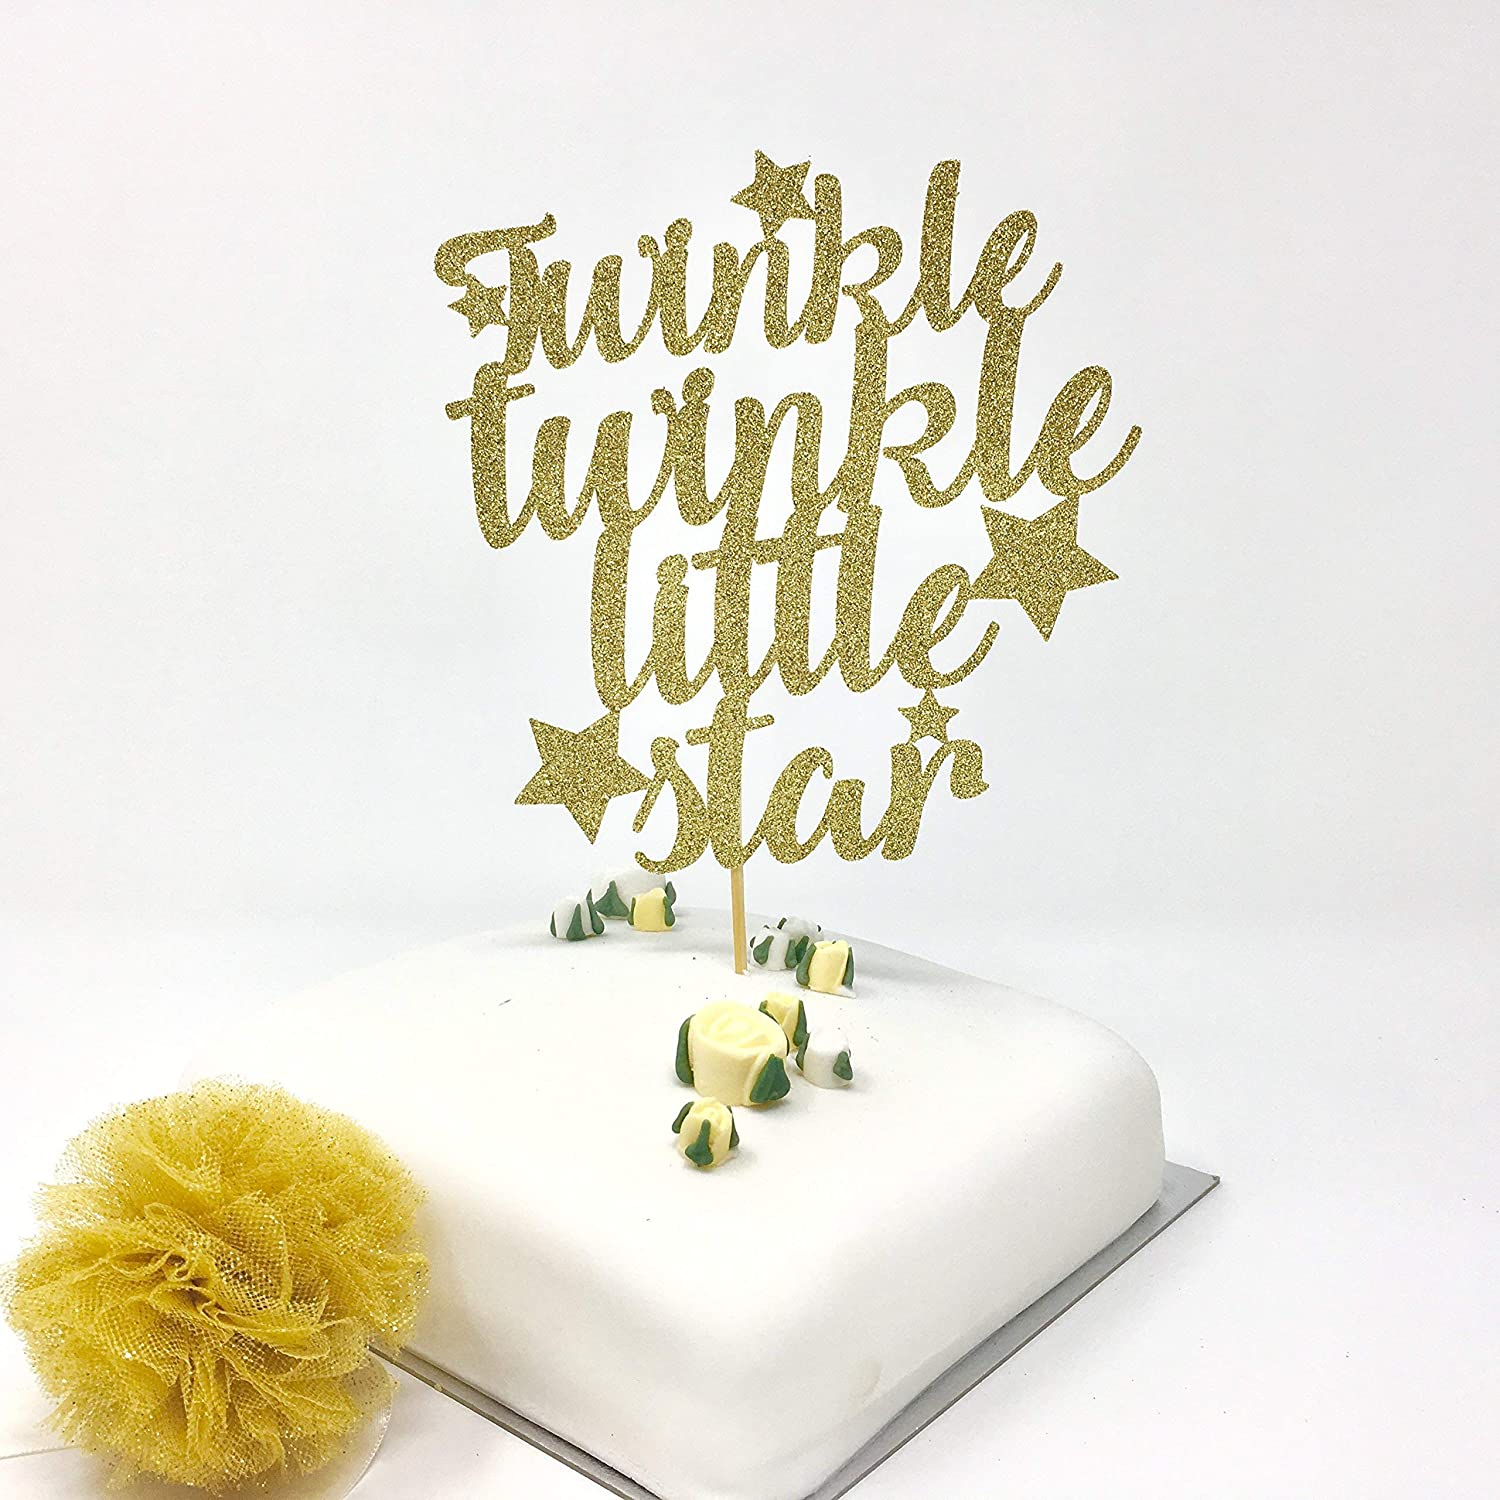 Astounding Twinkle Twinkle Little Star Cake Topper Baby Shower Cake Idea Personalised Birthday Cards Paralily Jamesorg